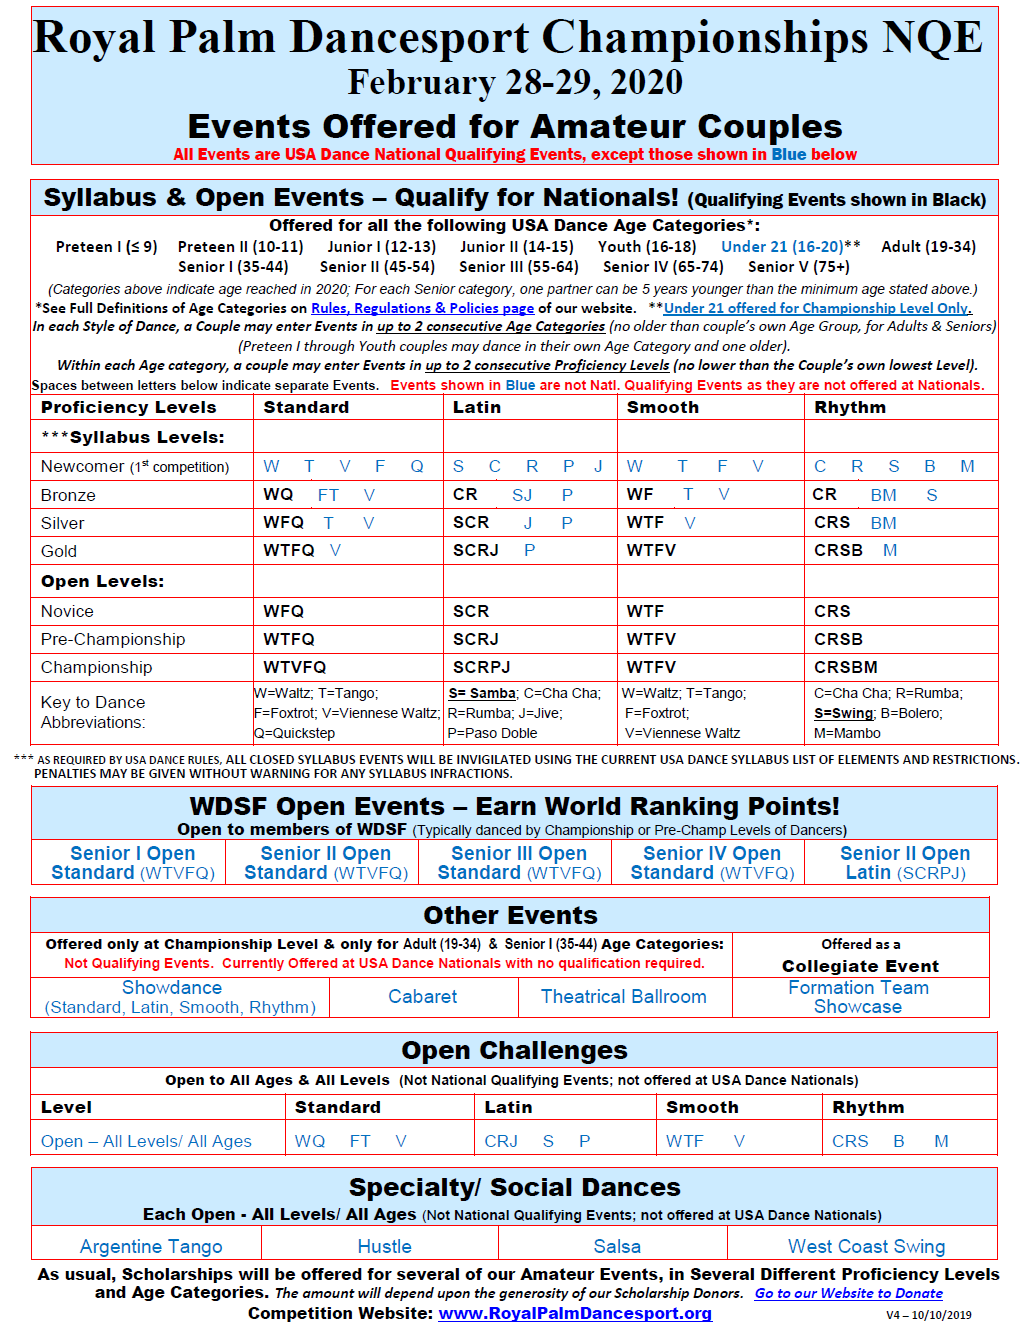 Events offered for Amateur Couples at 2020 Royal Palm DanceSport Championships NQE & WDSF Open